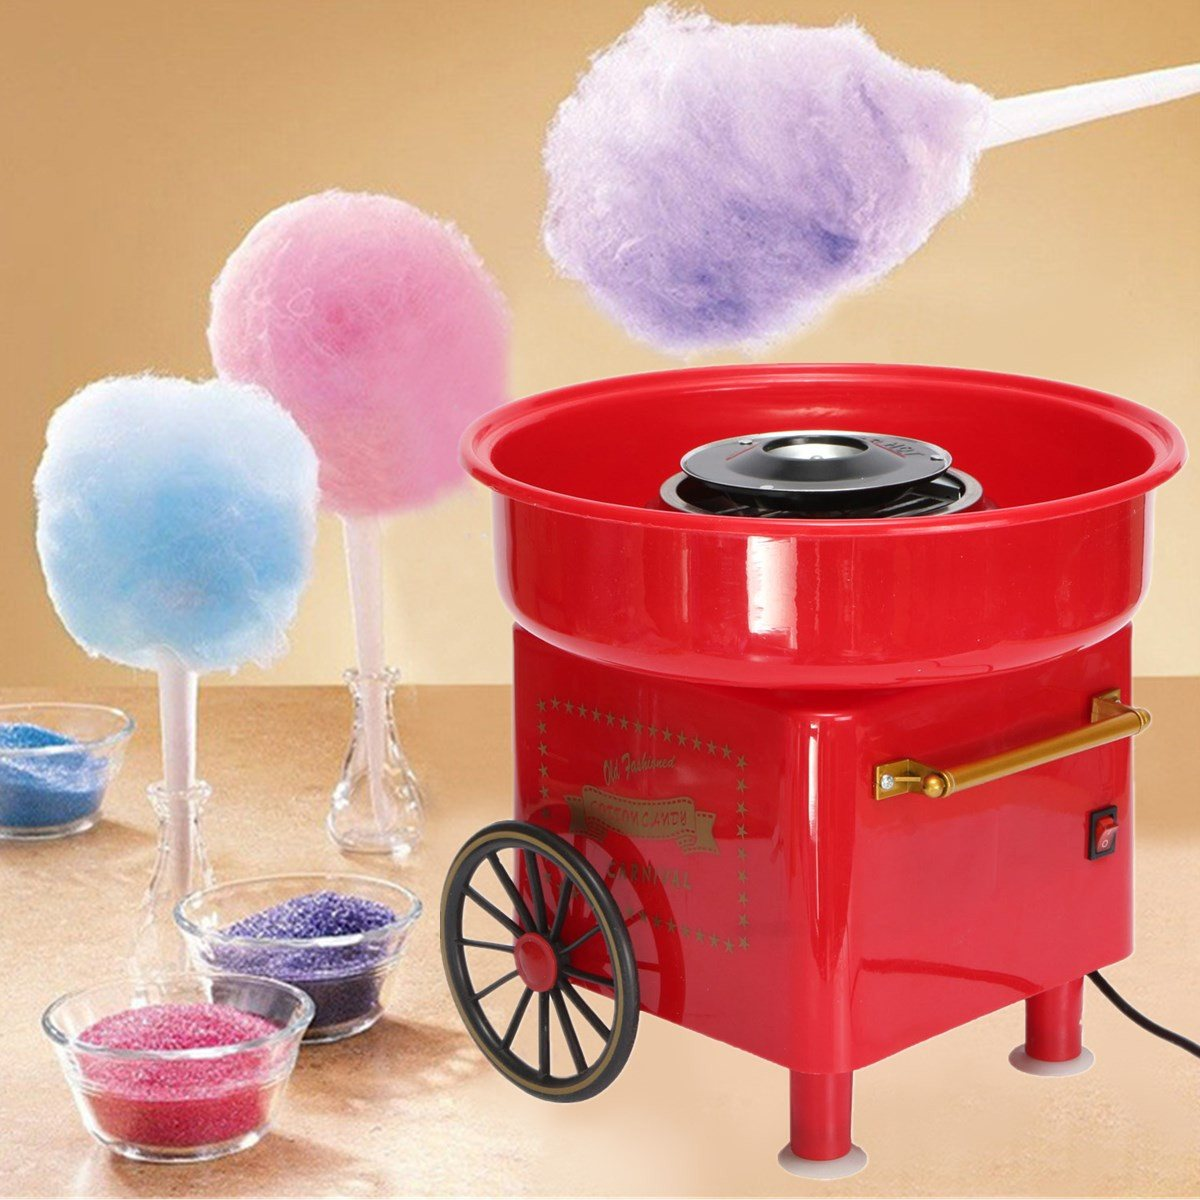 Vintage Electric Mini Home Diy Cotton Candy Floss Machine Cotton Sugar Spun Candy Maker Device Home Party Carnival Kids Gift